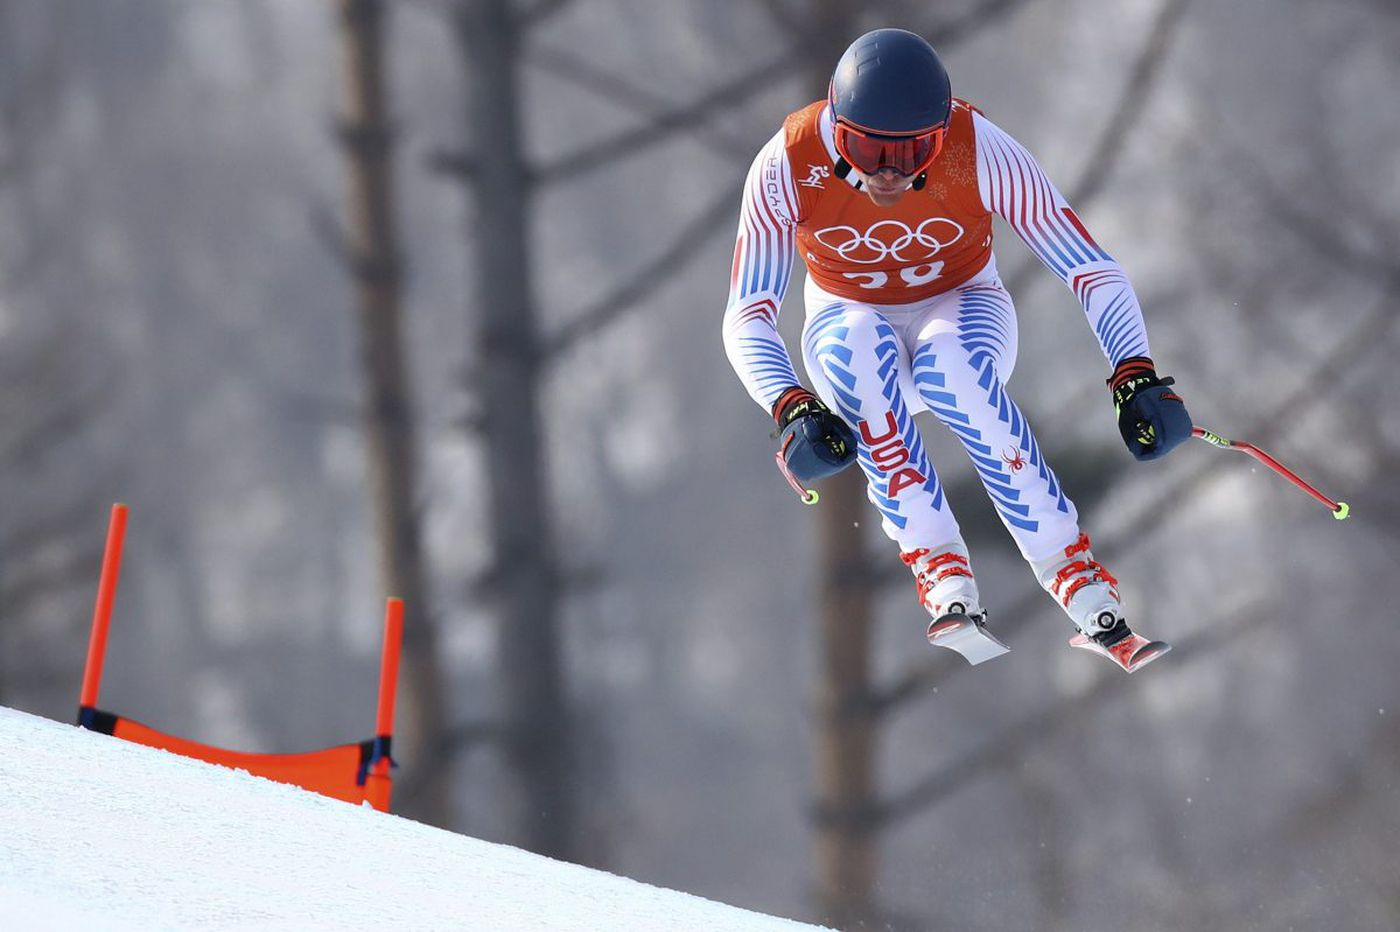 Winter Olympics 2018 TV schedule: Sunday, February 11, 2018